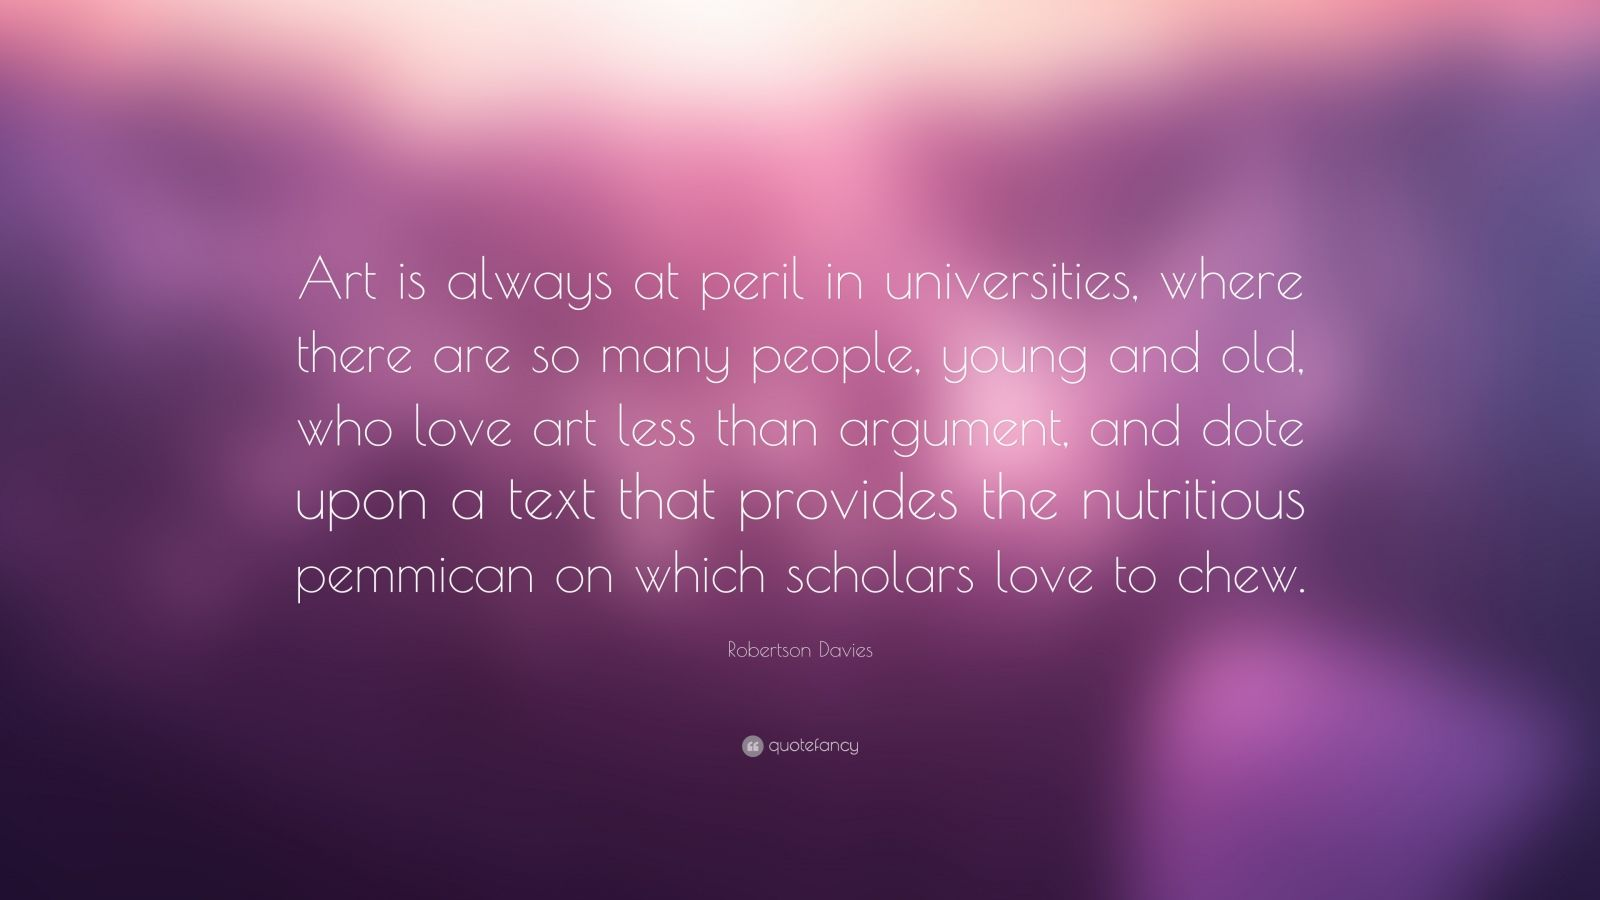 "Robertson Davies Quote: ""Art is always at peril in universities, where there are so many people, young and old, who love art less than argument, and dote upon a text that provides the nutritious pemmican on which scholars love to chew."""